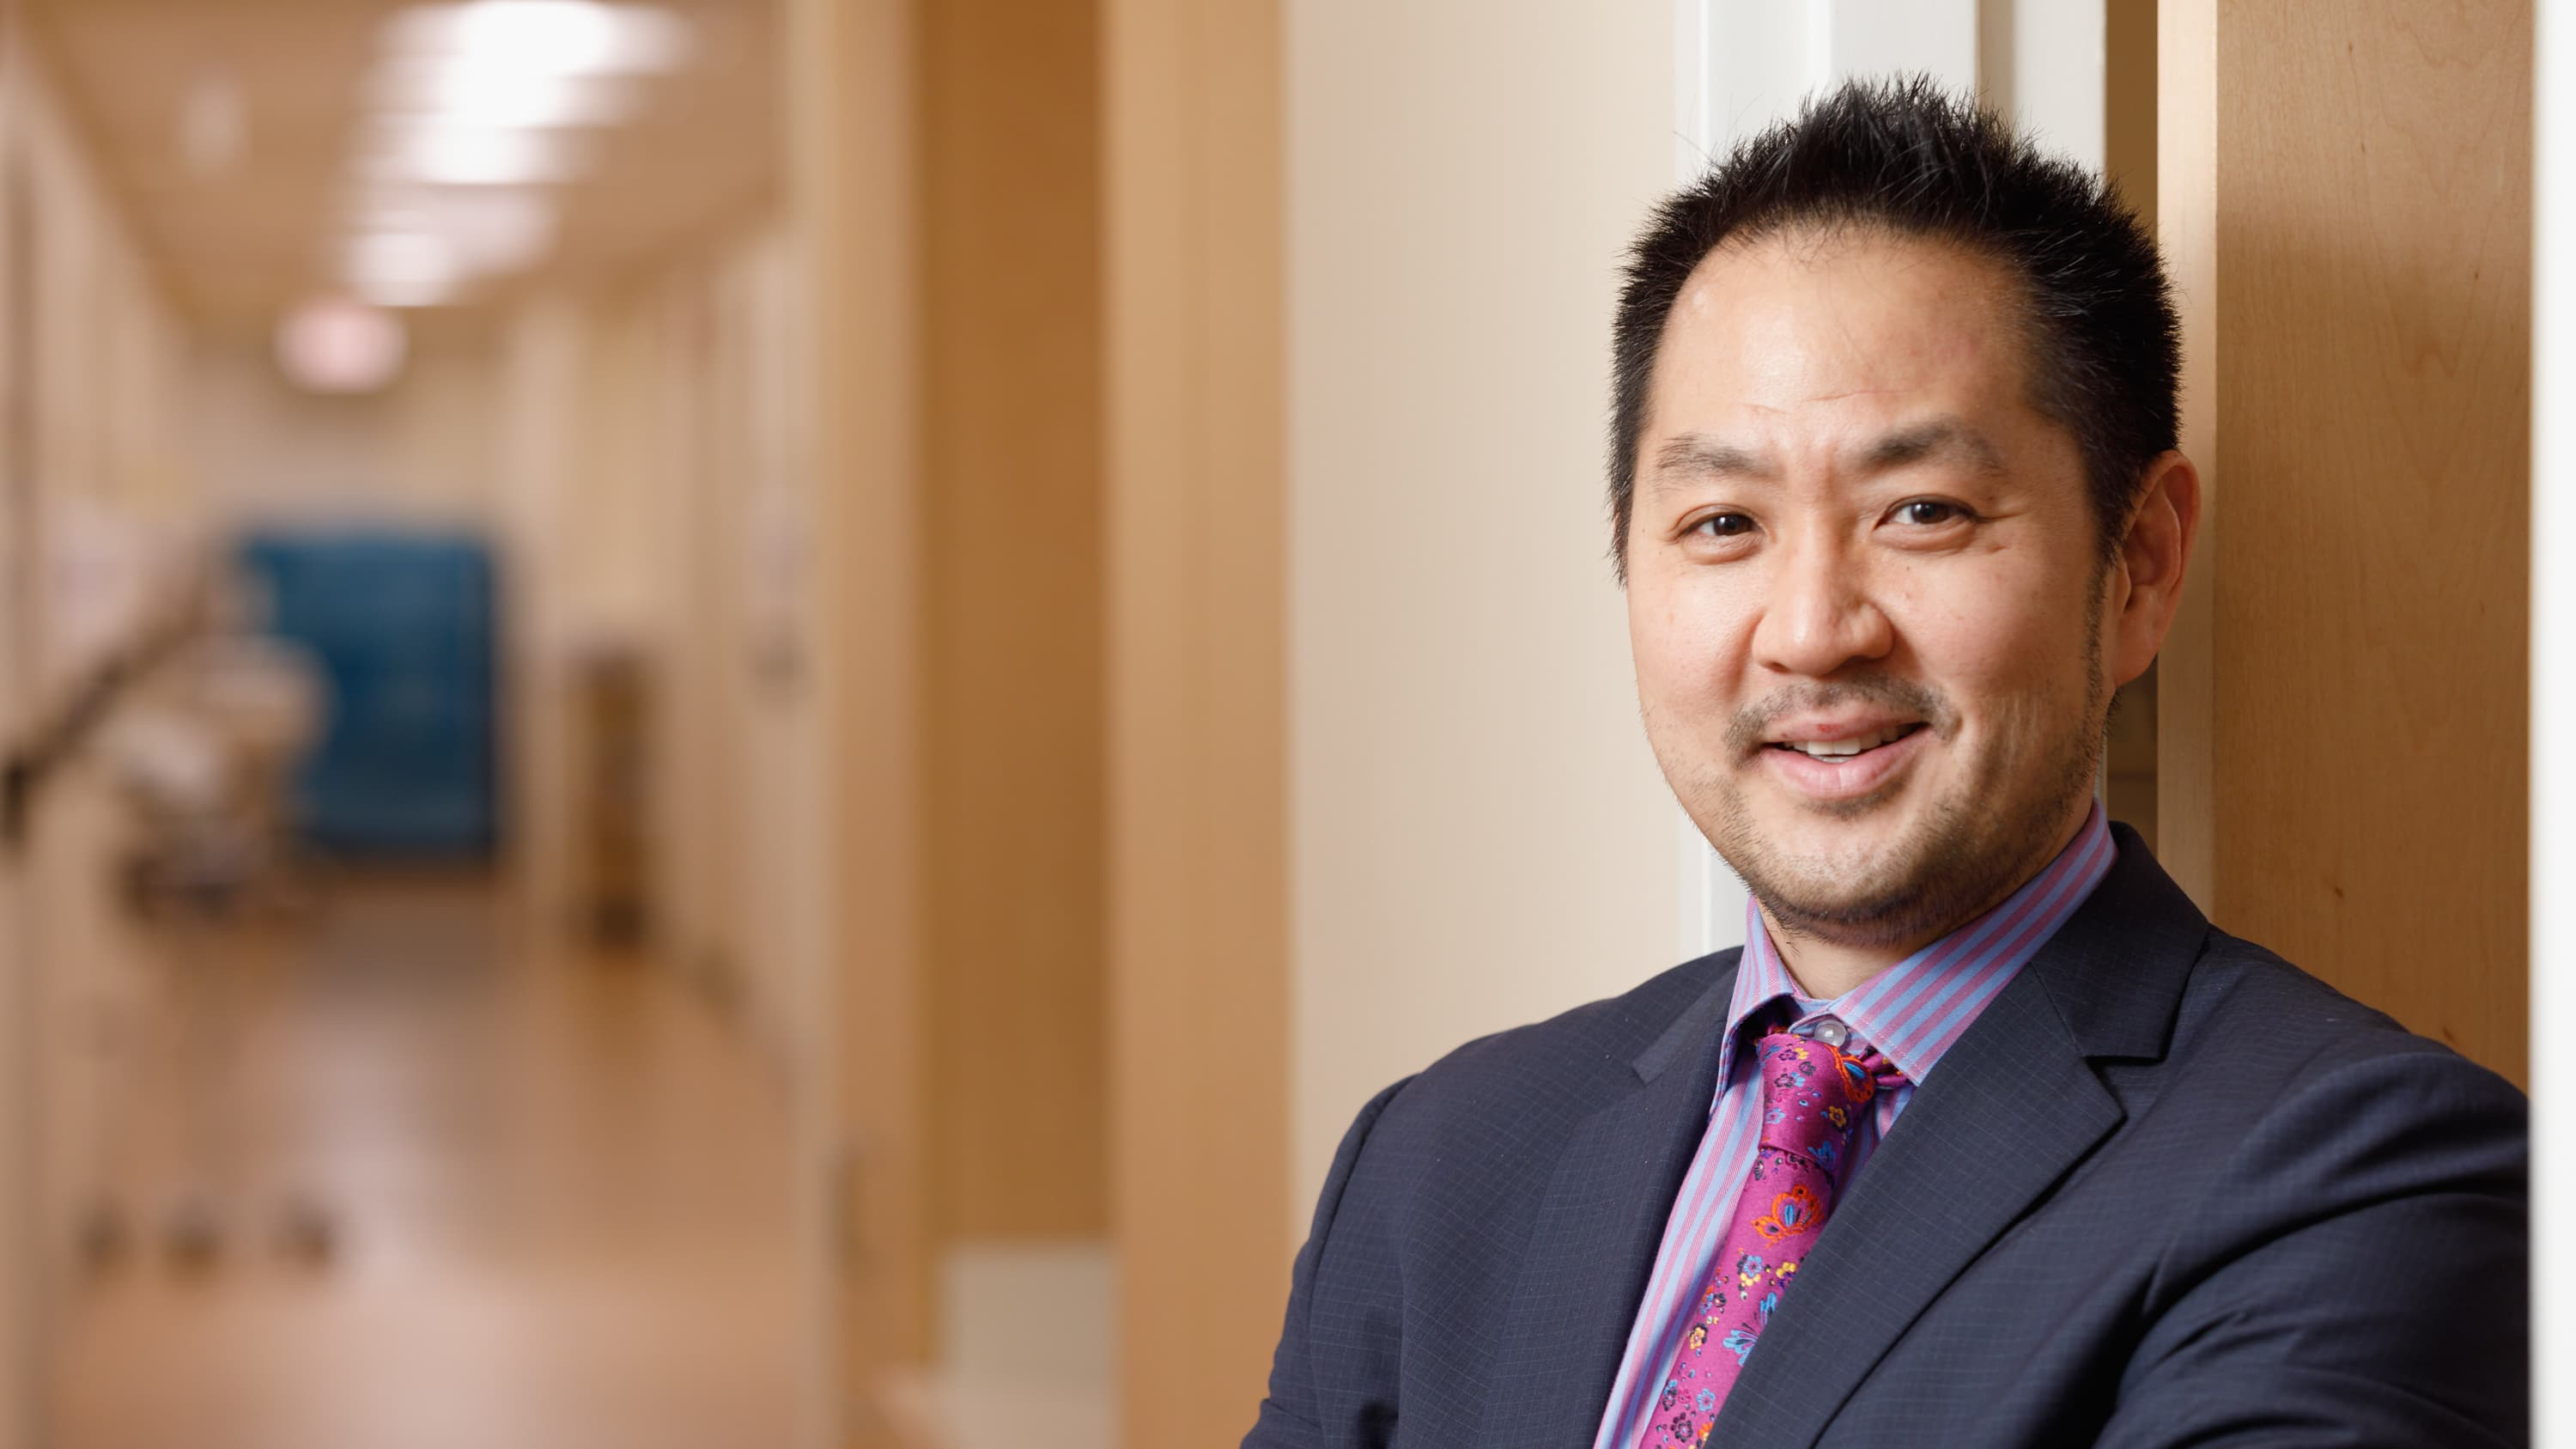 Portrait of Dr. Peter Whang in the hallway. He is wearing a purple dress shirt, tie and jacket.